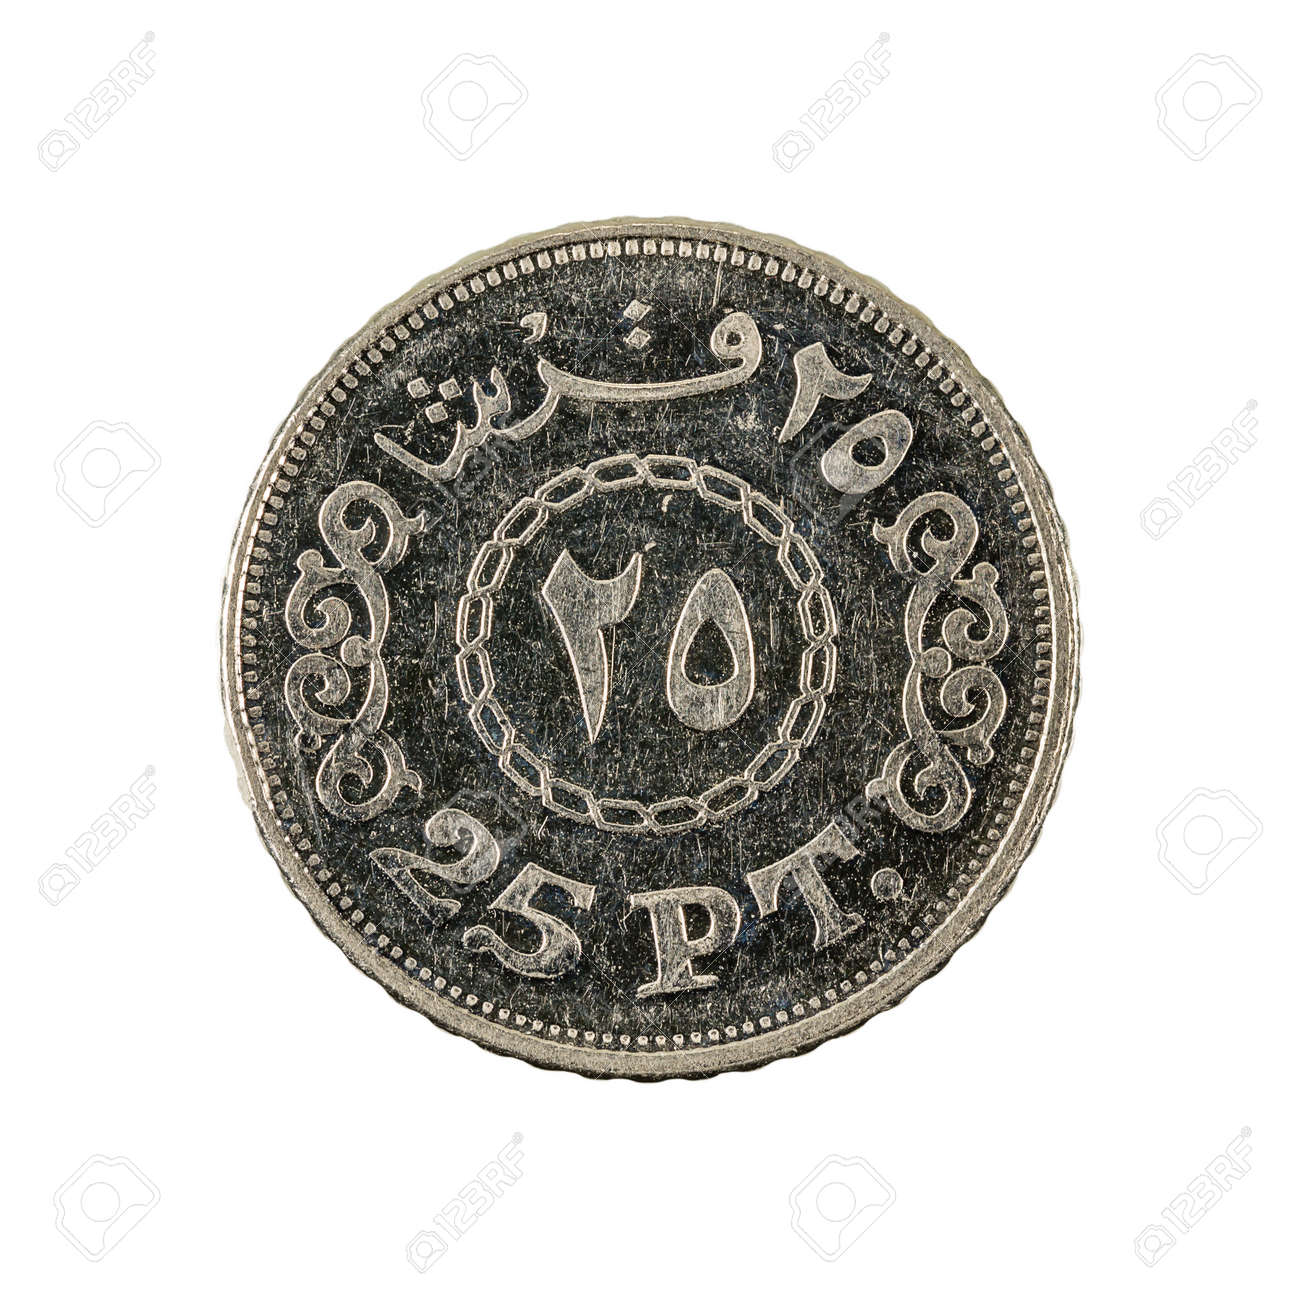 25 Egyptian Piastre Coin Obverse Isolated On White Background Stock